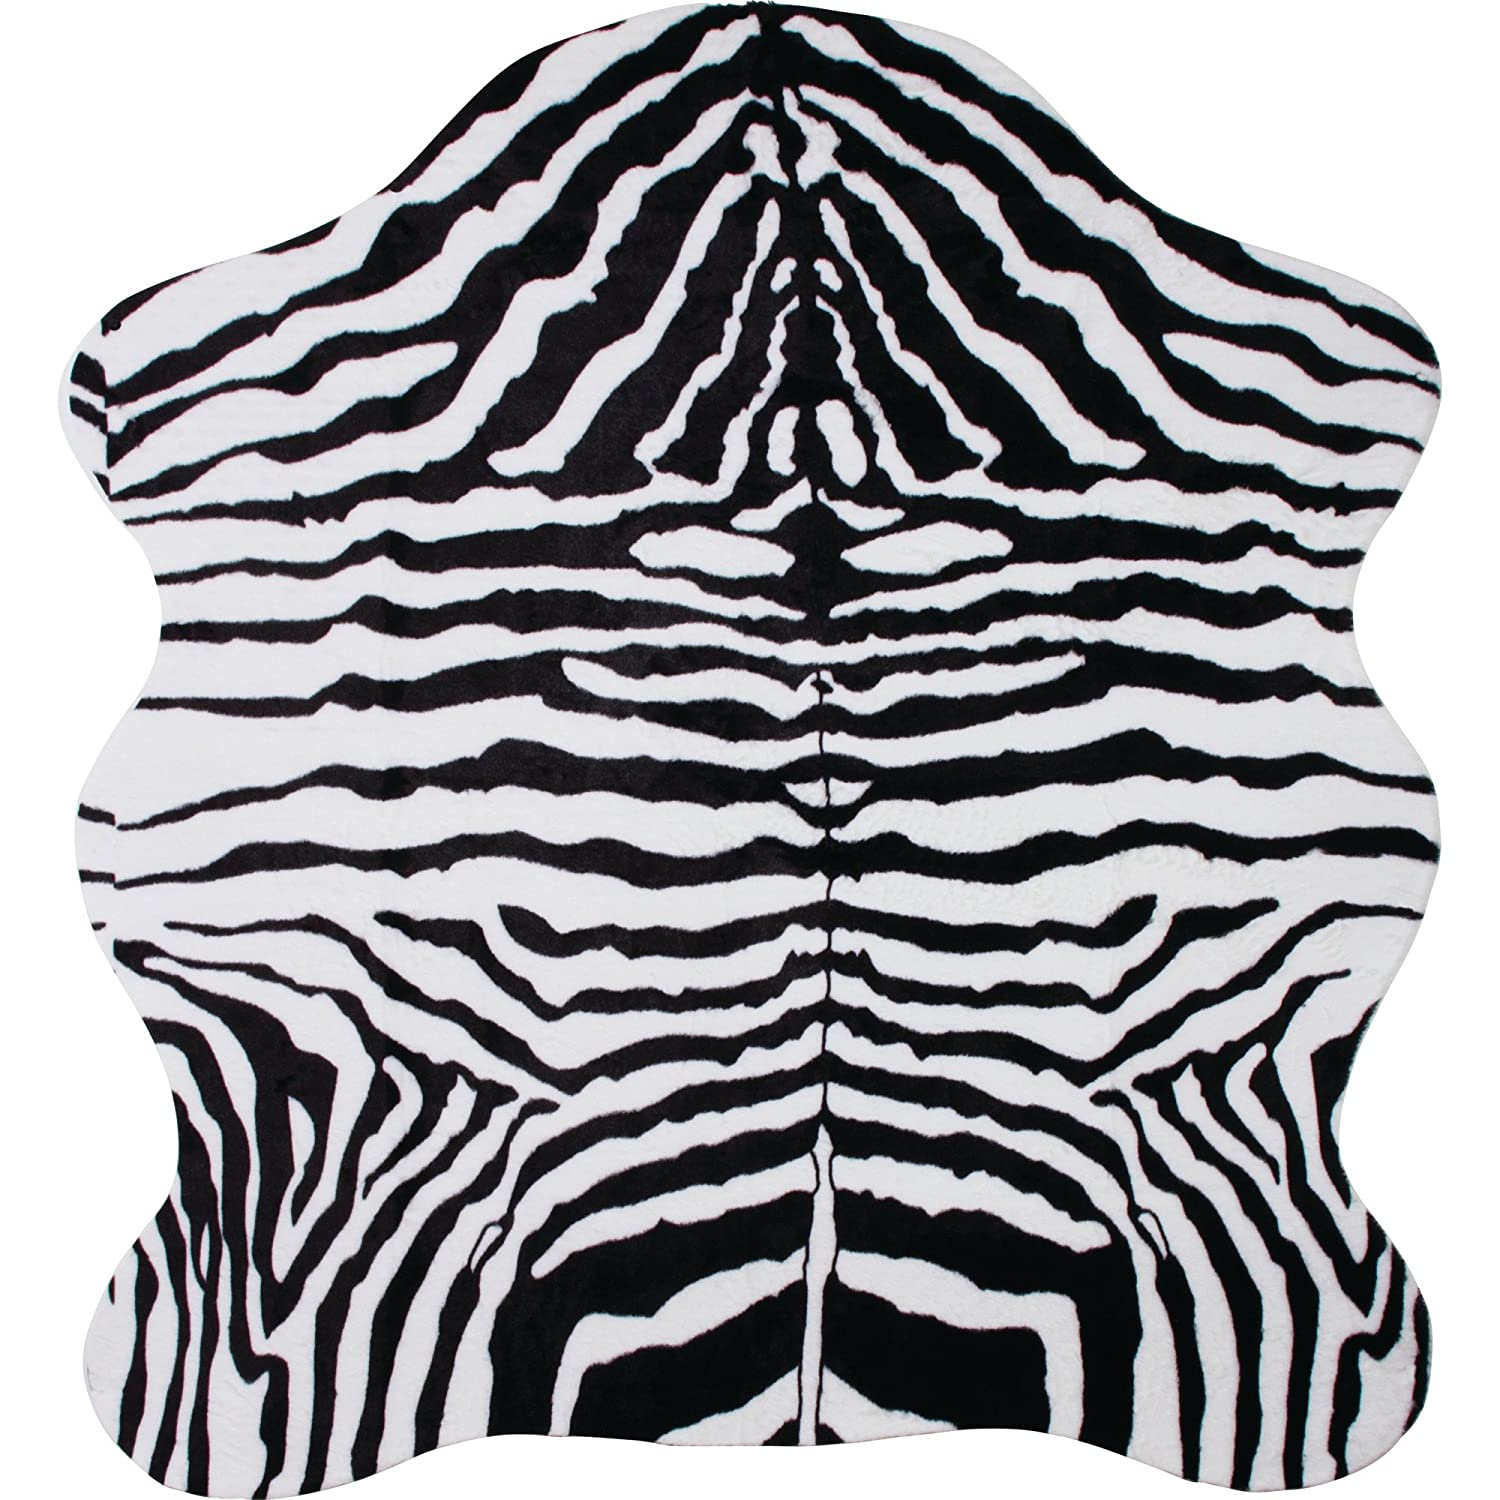 Zebra Print Pictures, Images and Stock Photos - iStock